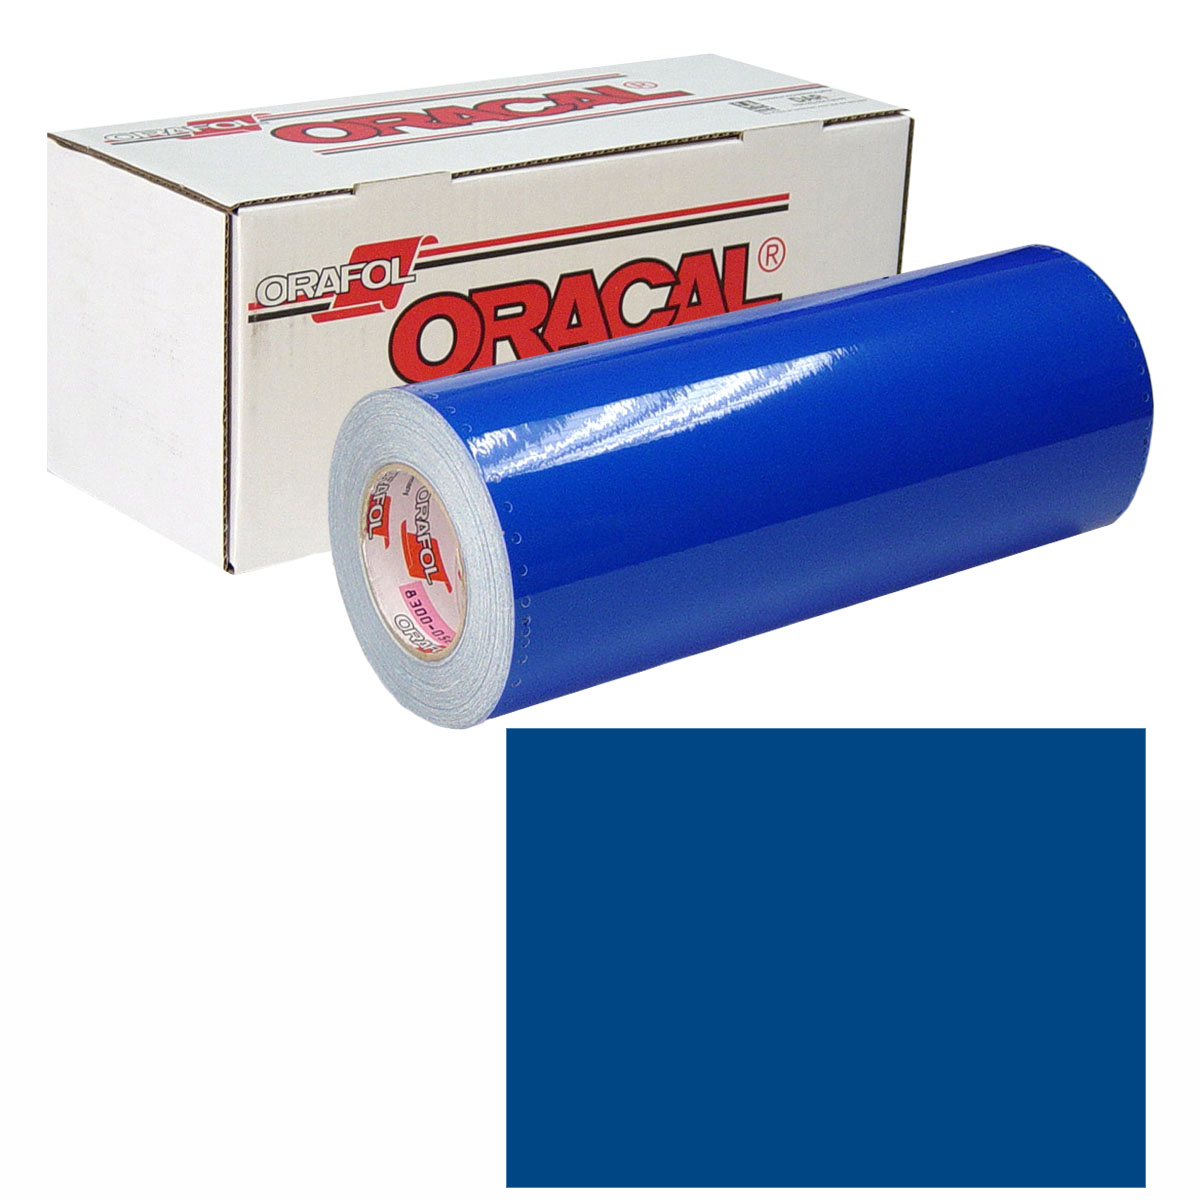 ORACAL 631 15In X 10Yd 051 Gentian Blue